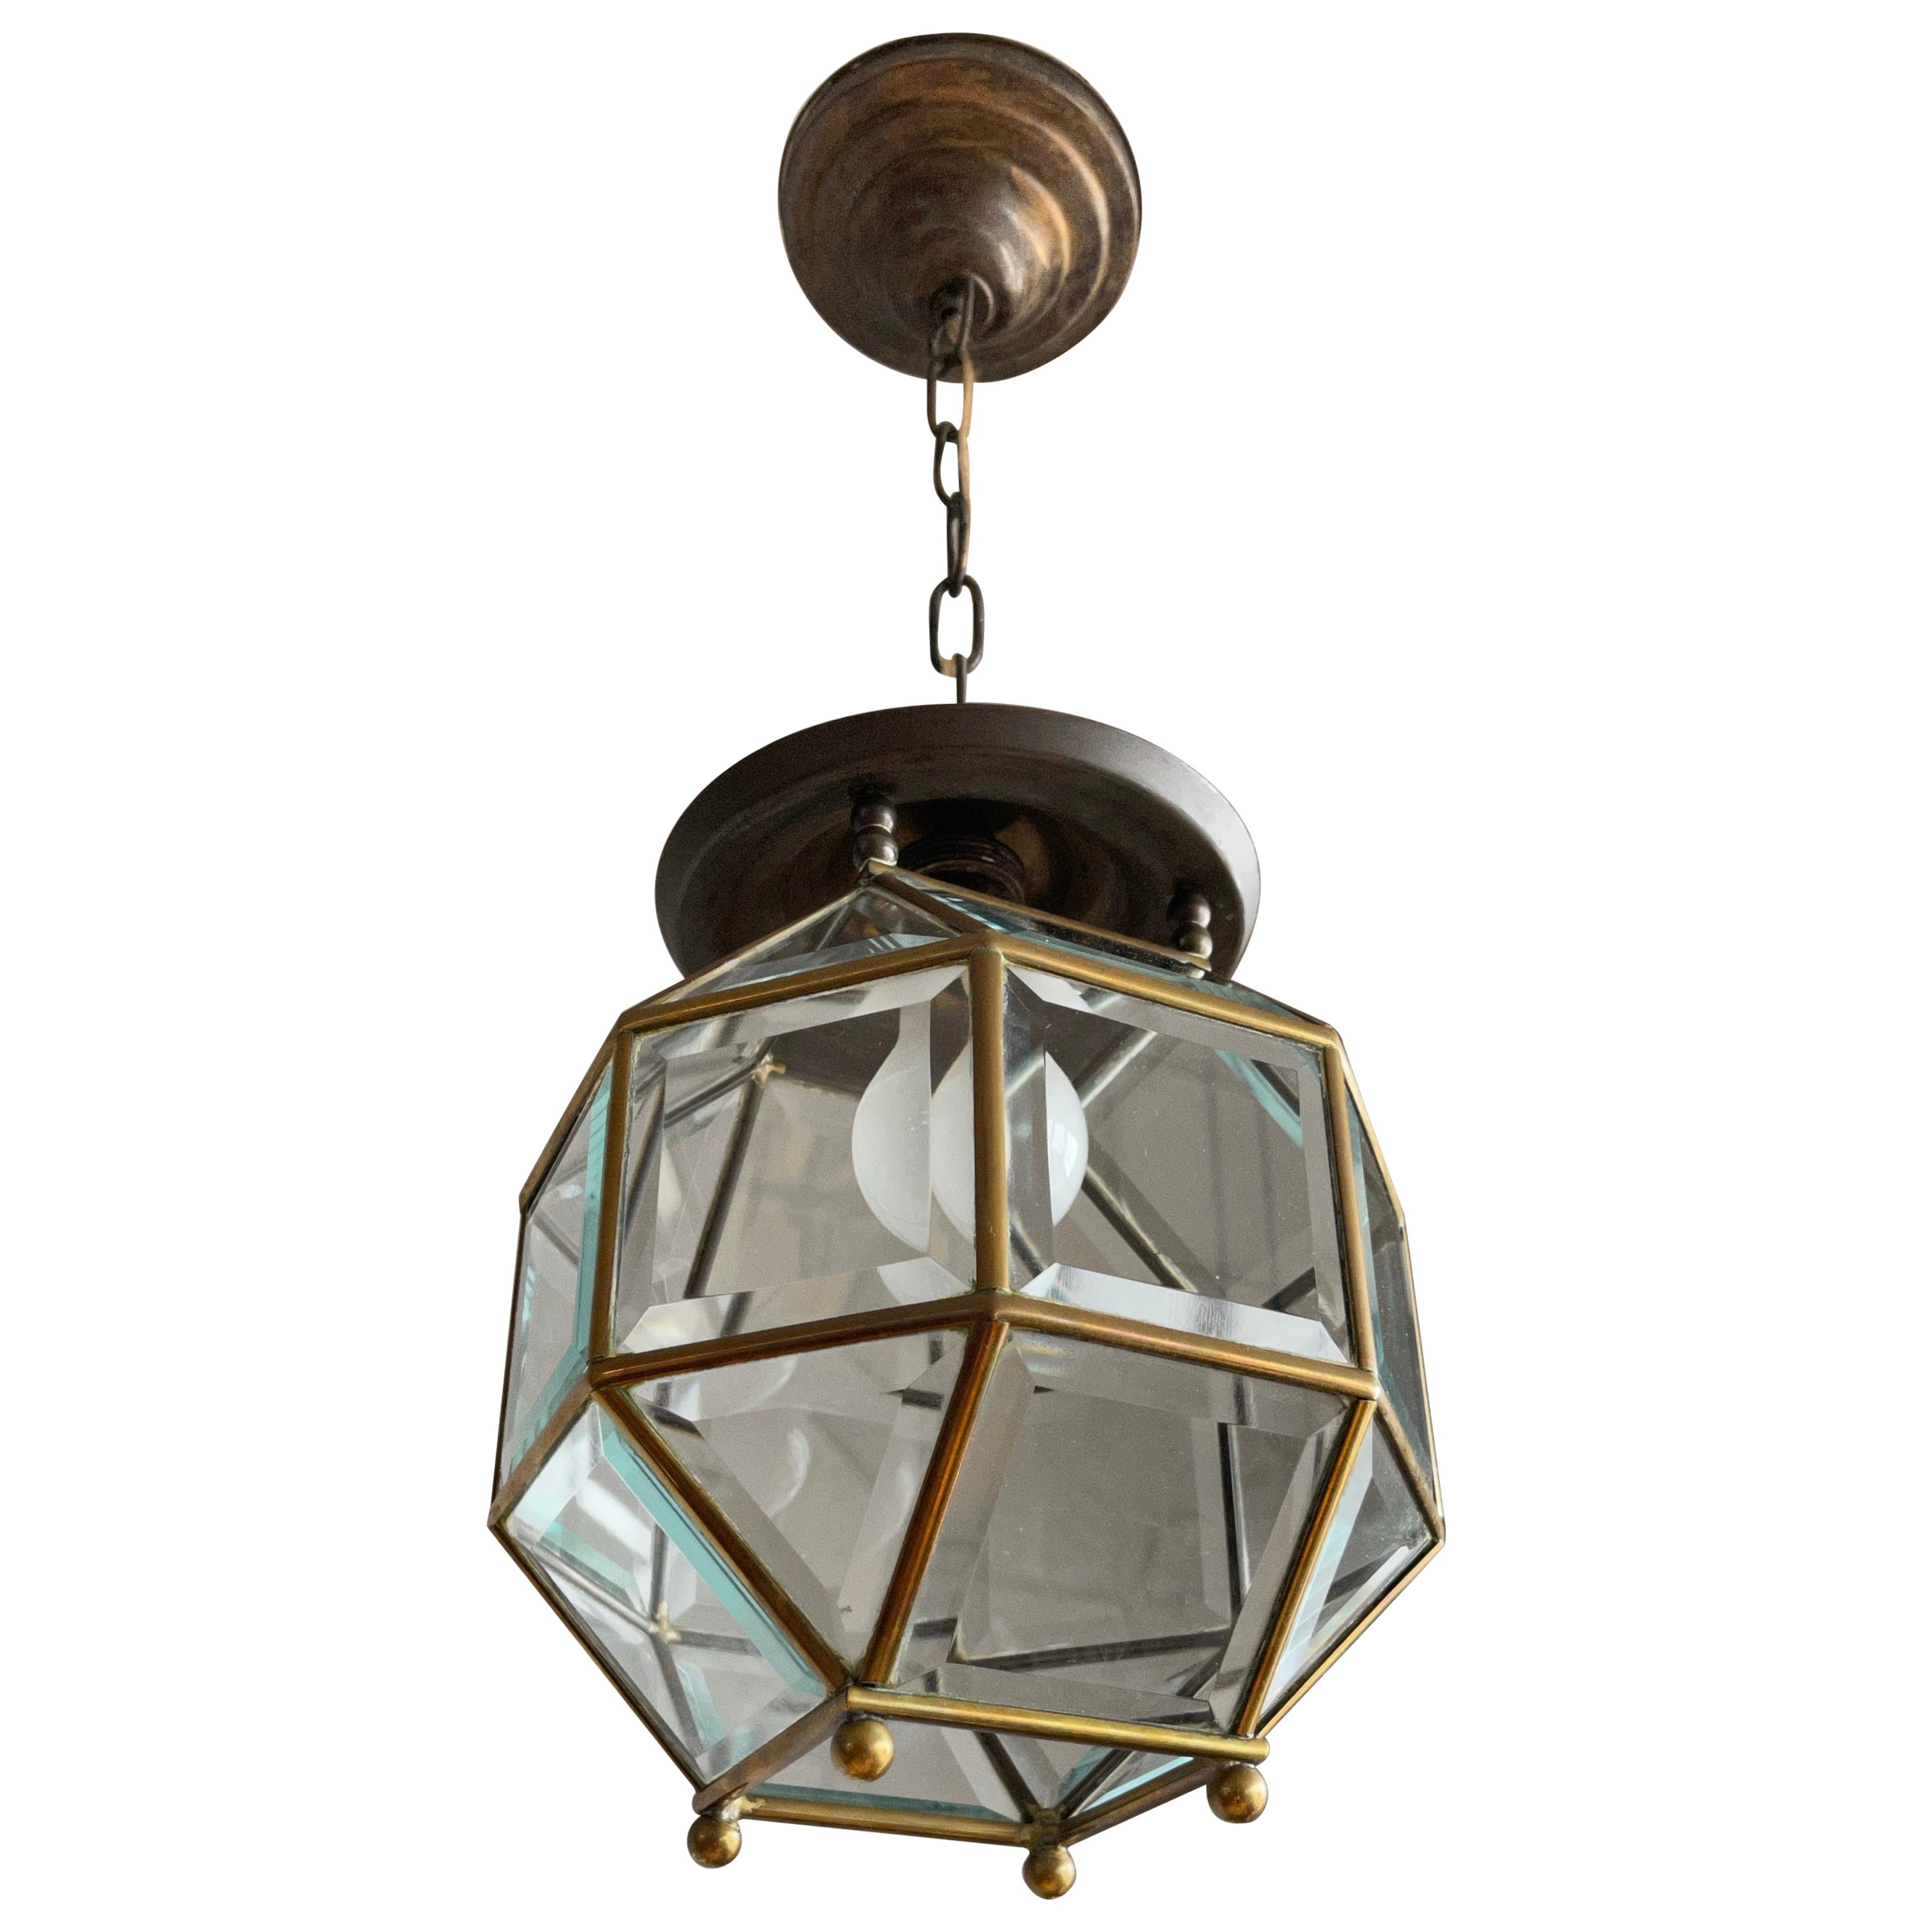 Early 1900s Beveled Glass and Brass Pendant Cubic Adolf Loos Style Ceiling Light